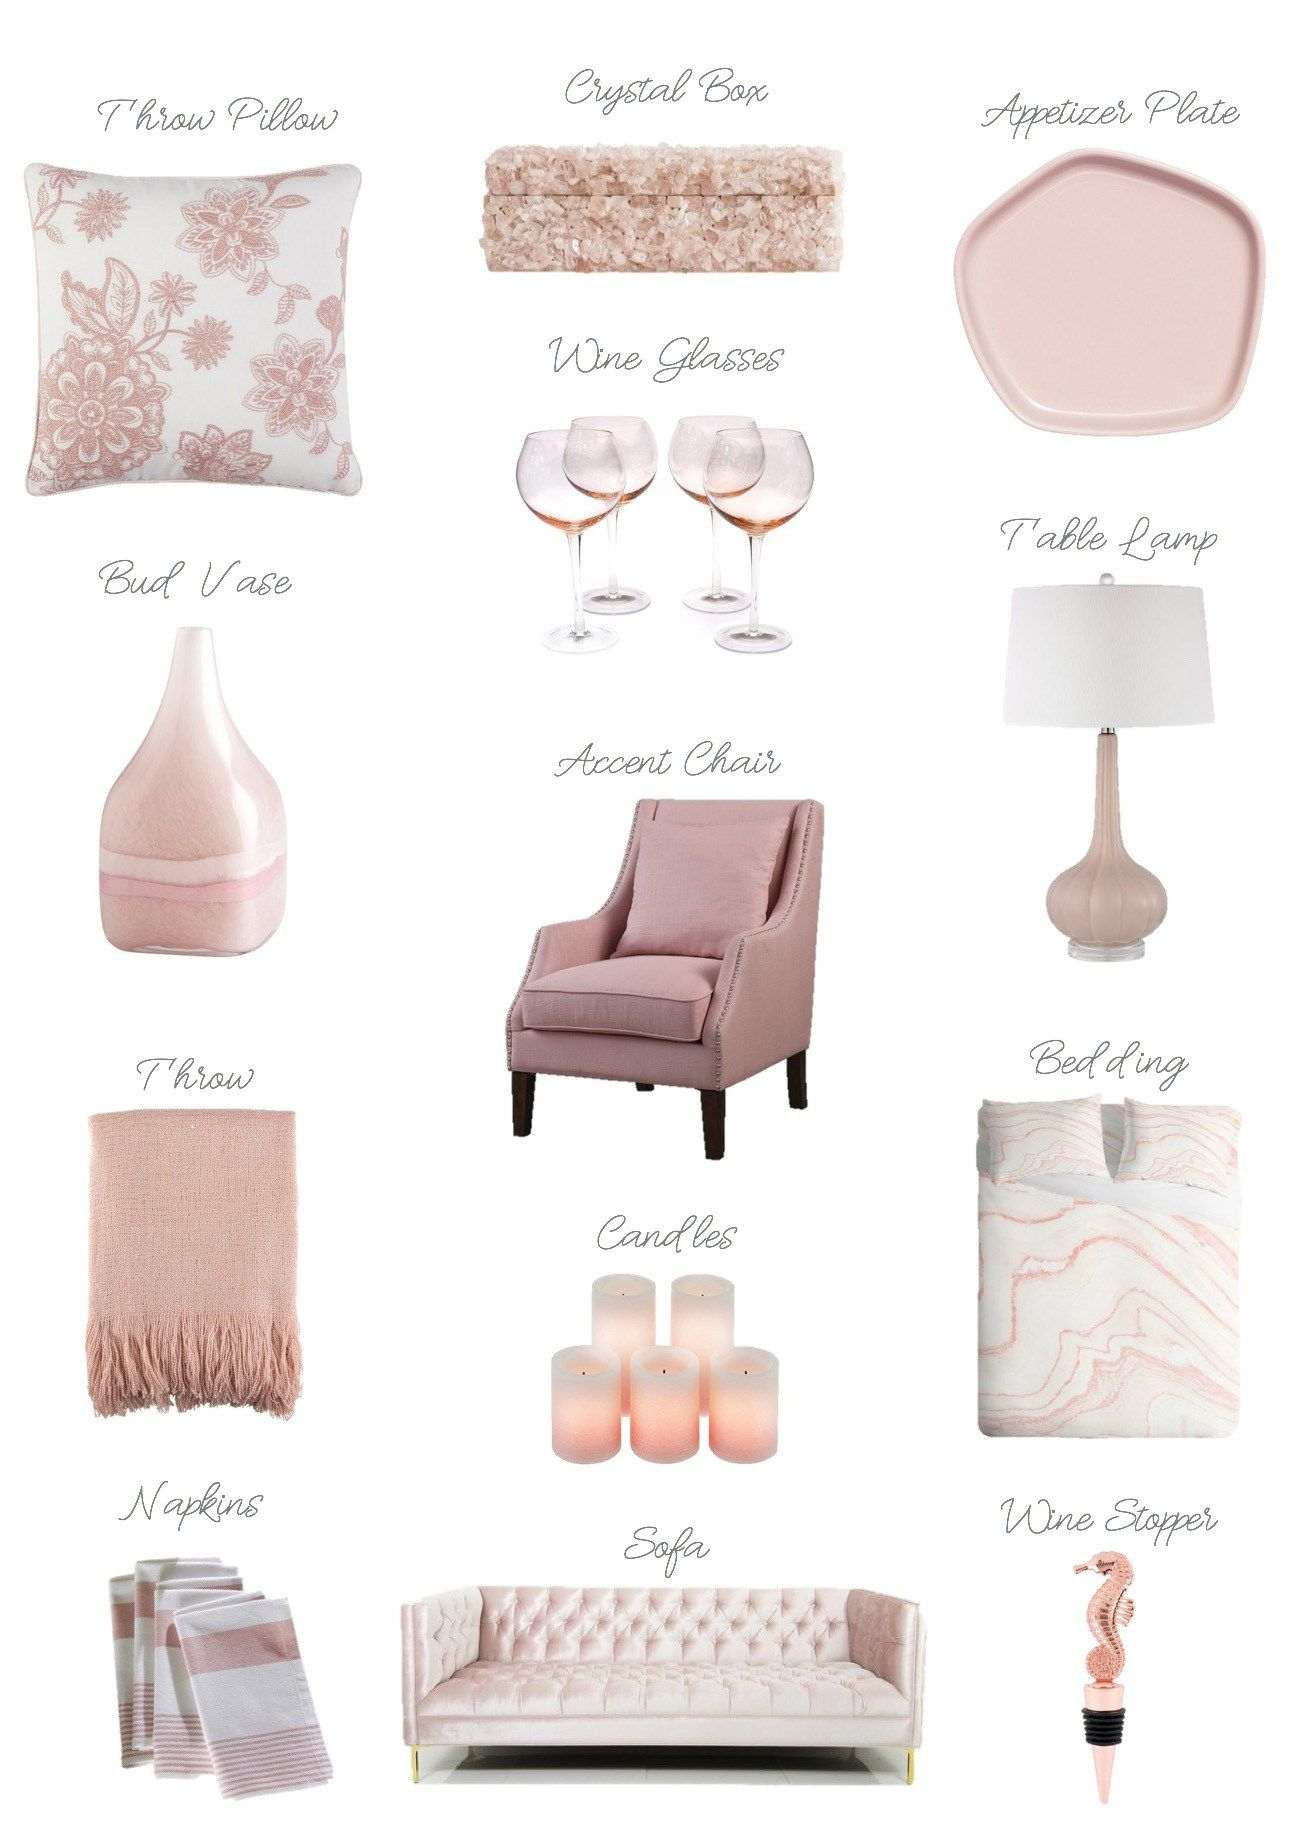 Blush Pink Is A New Home Decor Neutral Pink Home Decor Home